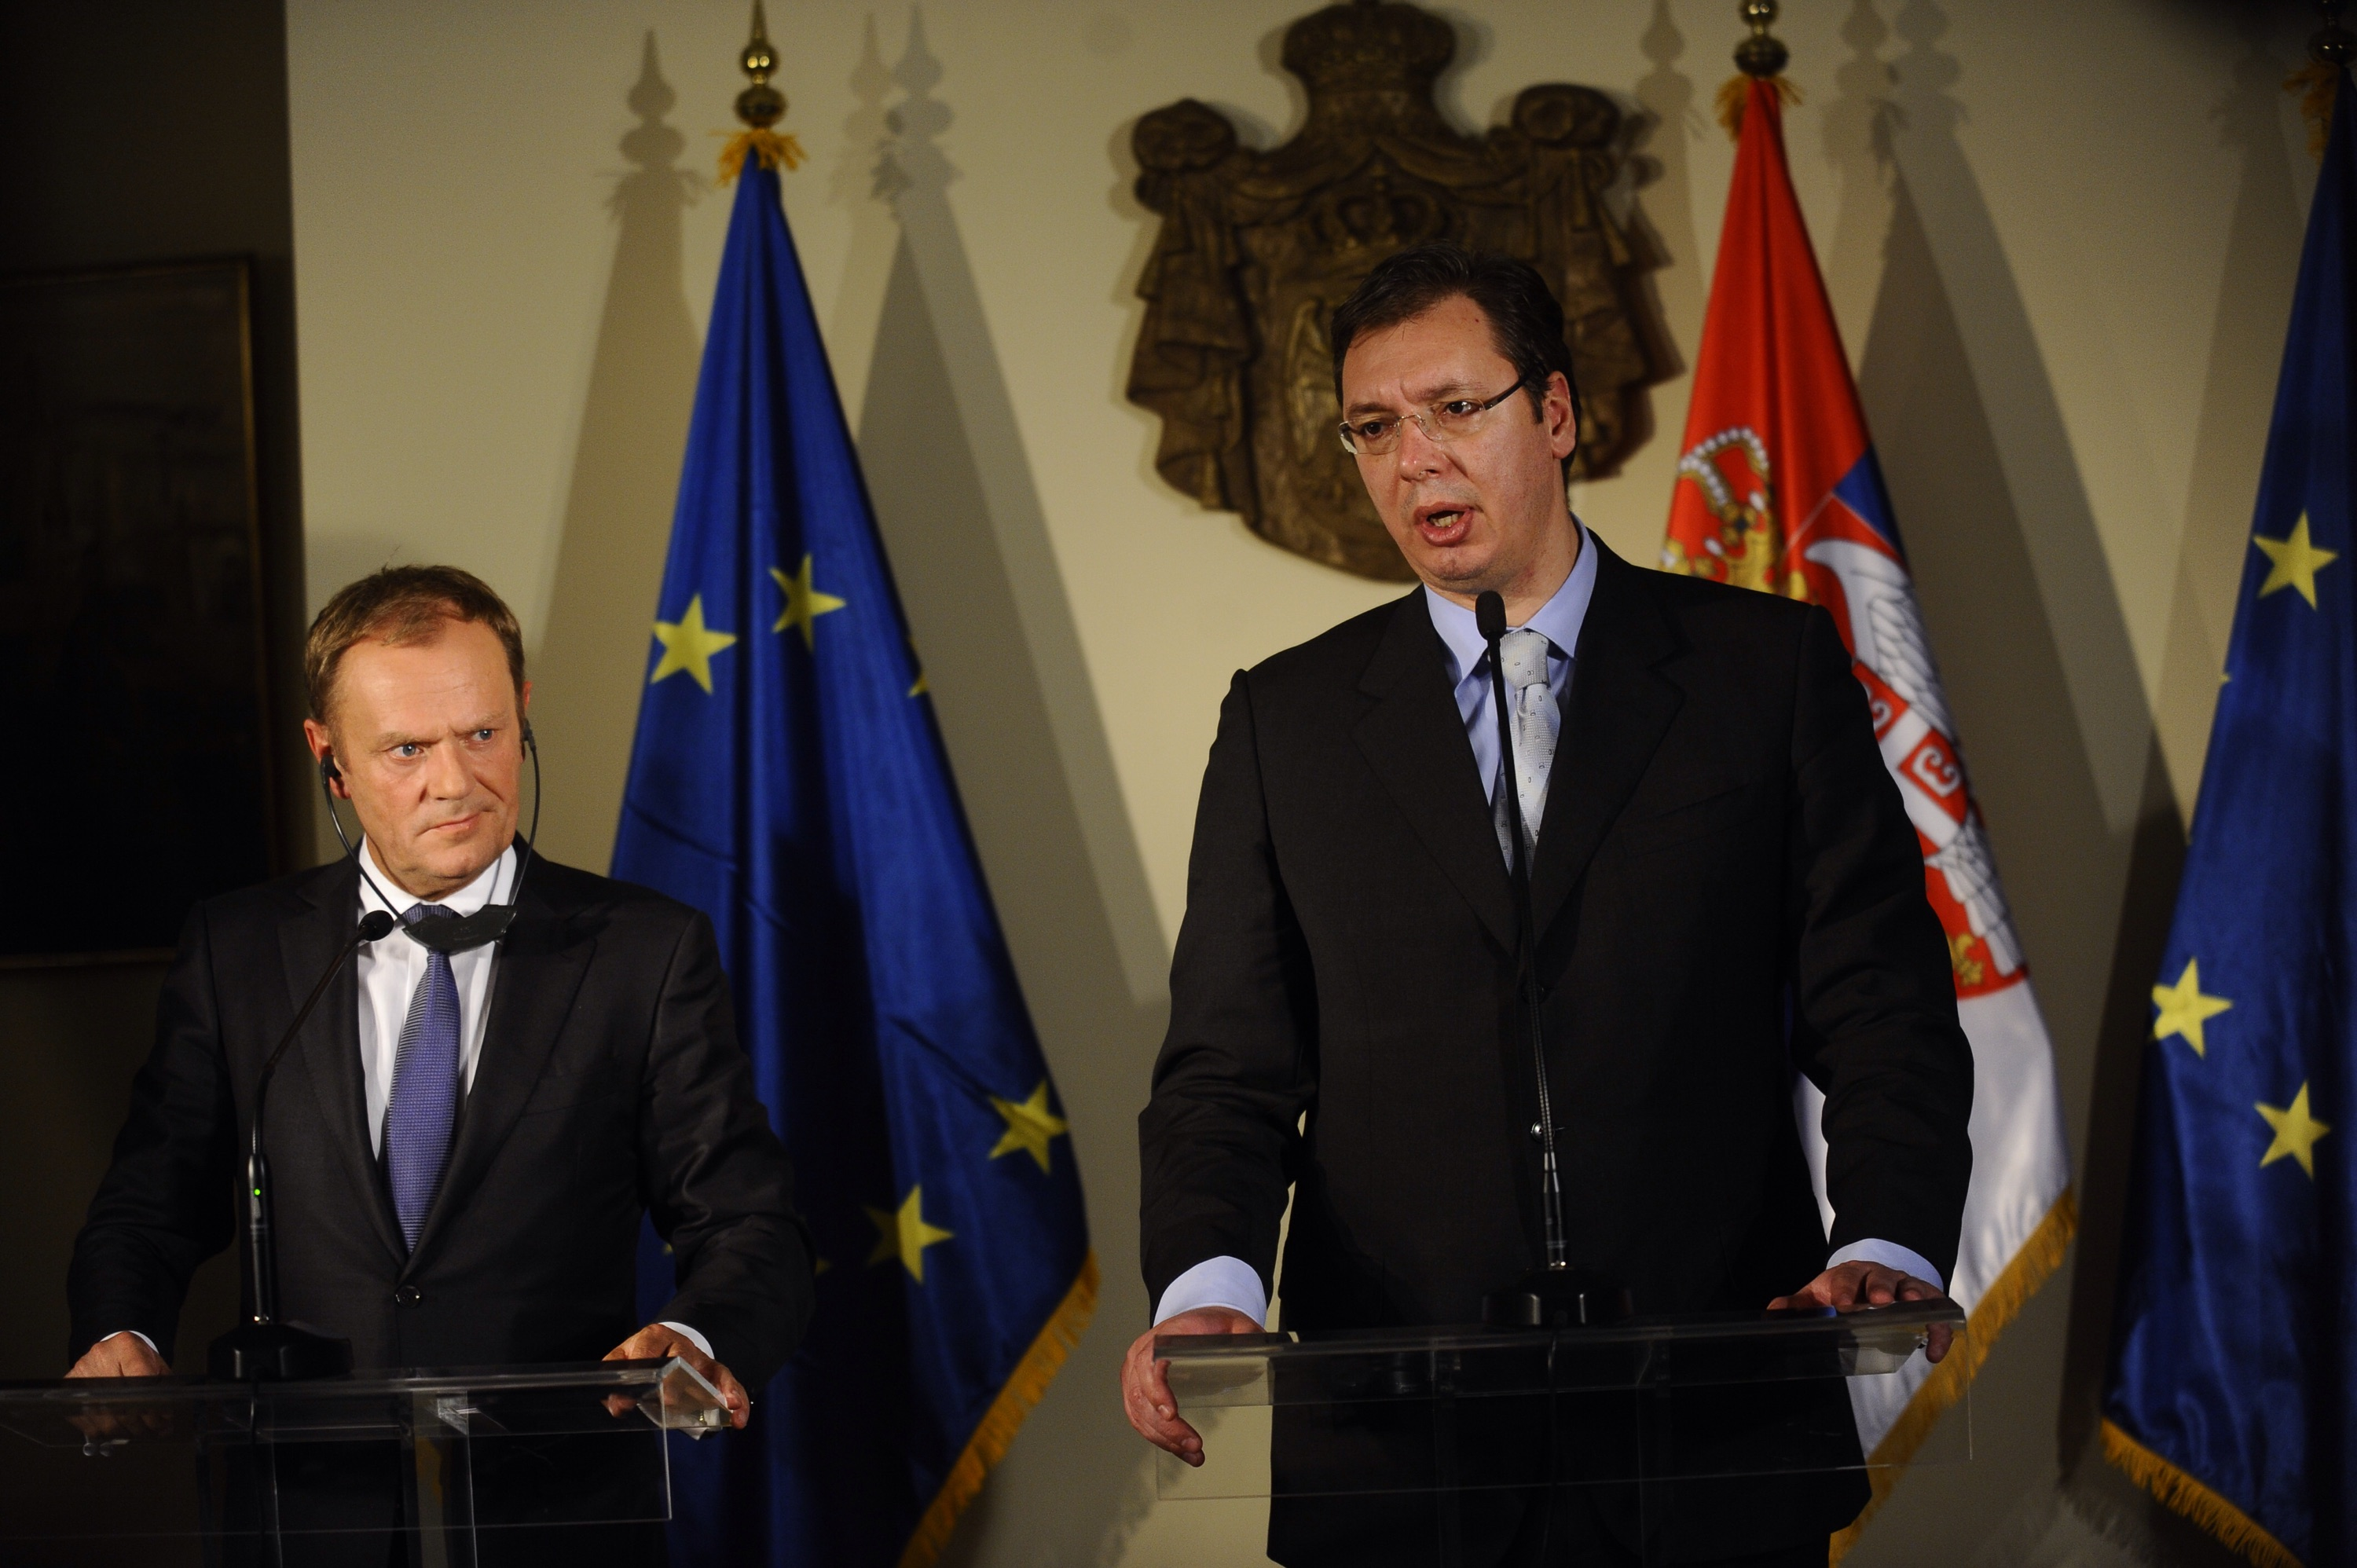 Vucic meets with Tusk in Brussles – No set framework for Serbia's accession process